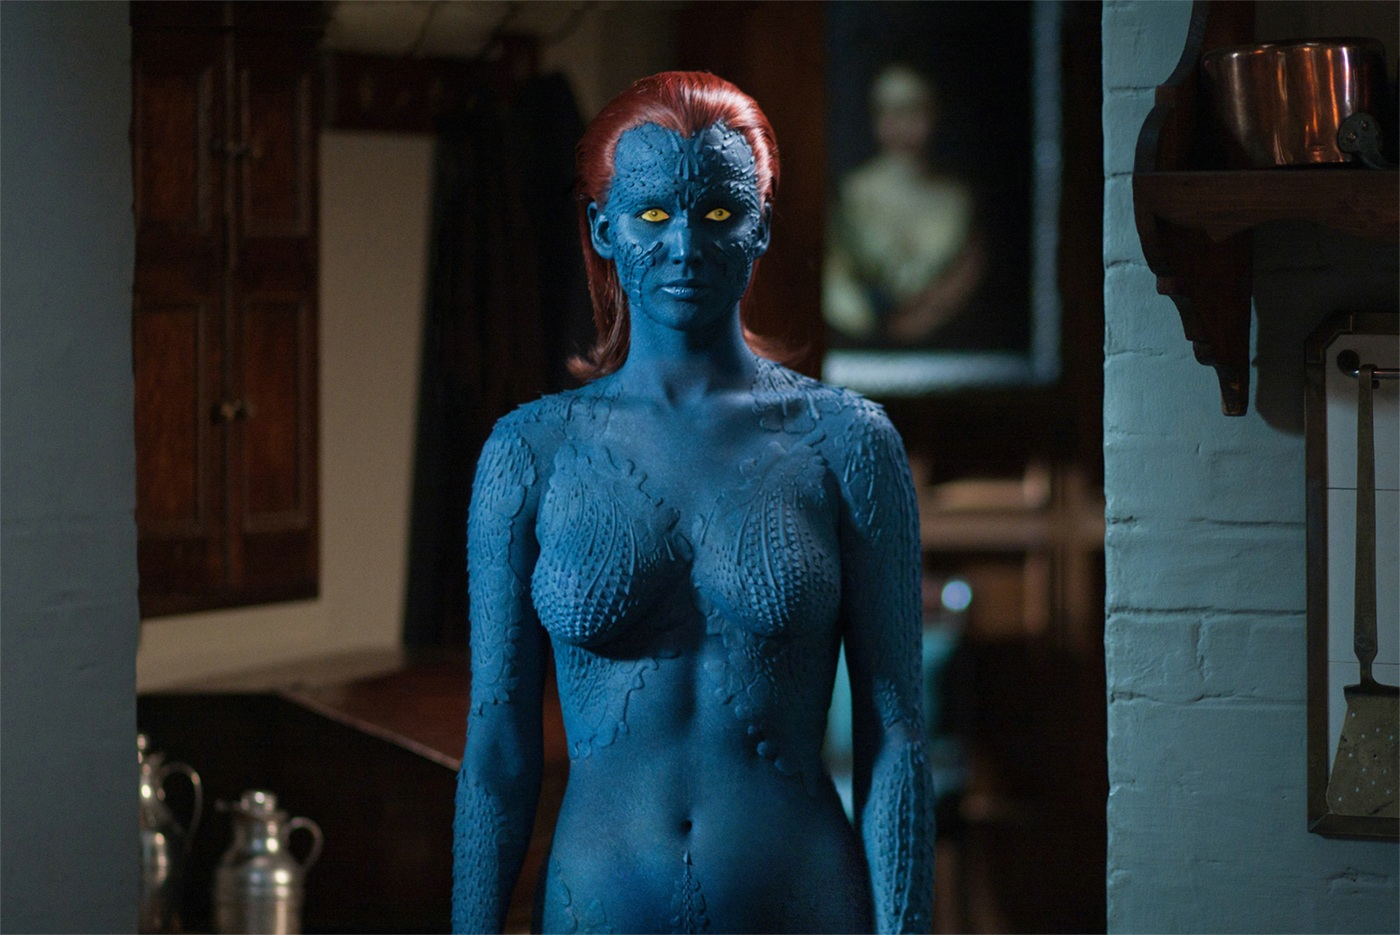 To See Sey Video Of Jennifer Lawrence Being Painted Go Here